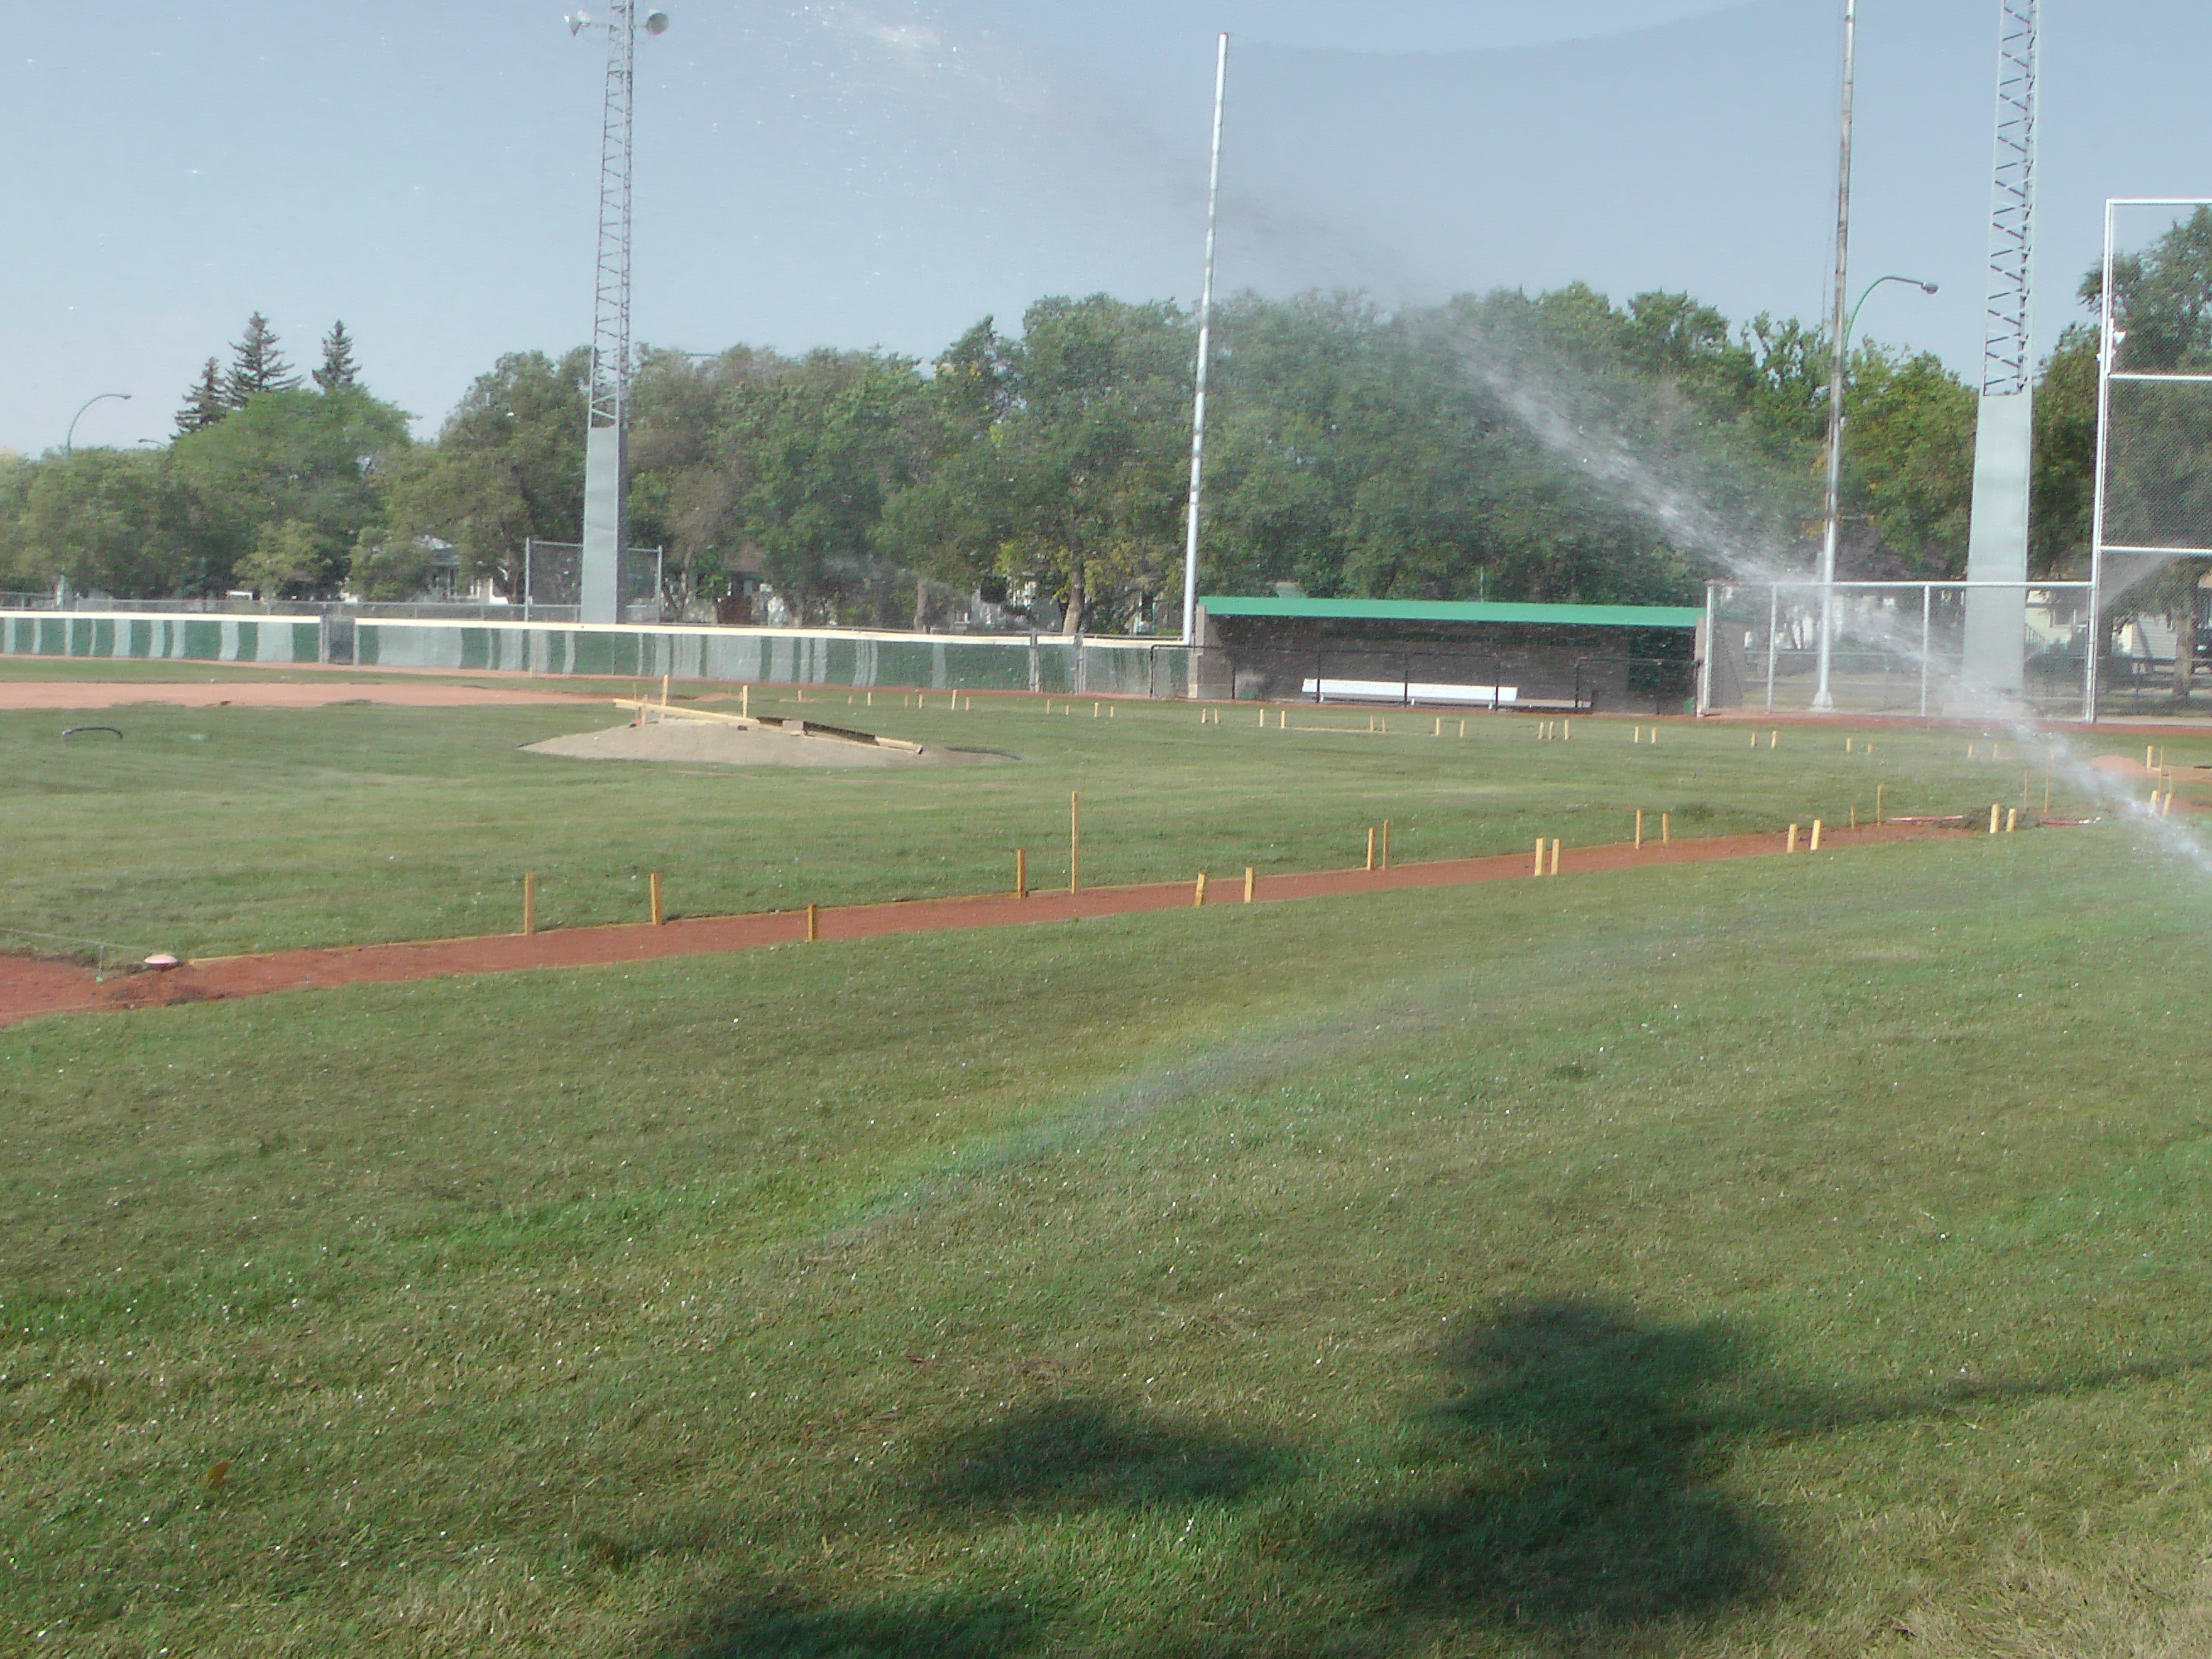 Sept 7 & 8 2018, Optimist Park Field Renovations, sod down being watered - Image 4